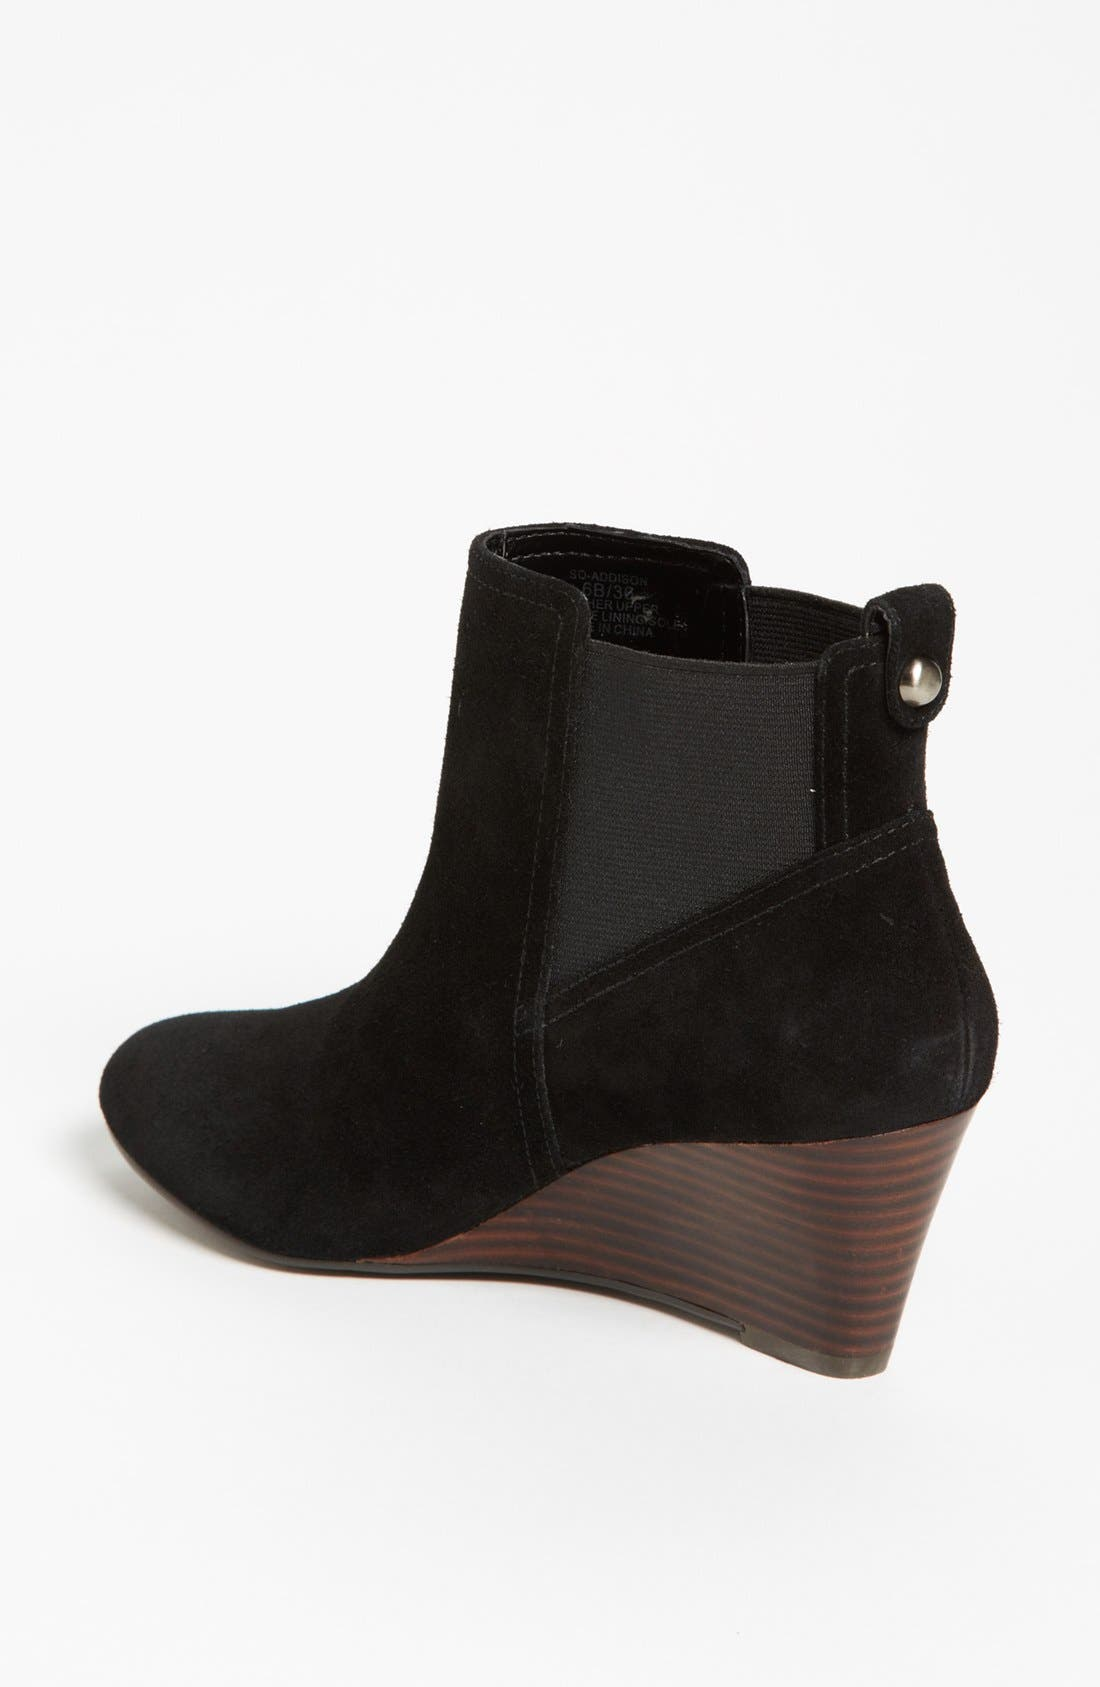 SOLE SOCIETY, 'Addison' Bootie, Alternate thumbnail 3, color, 001